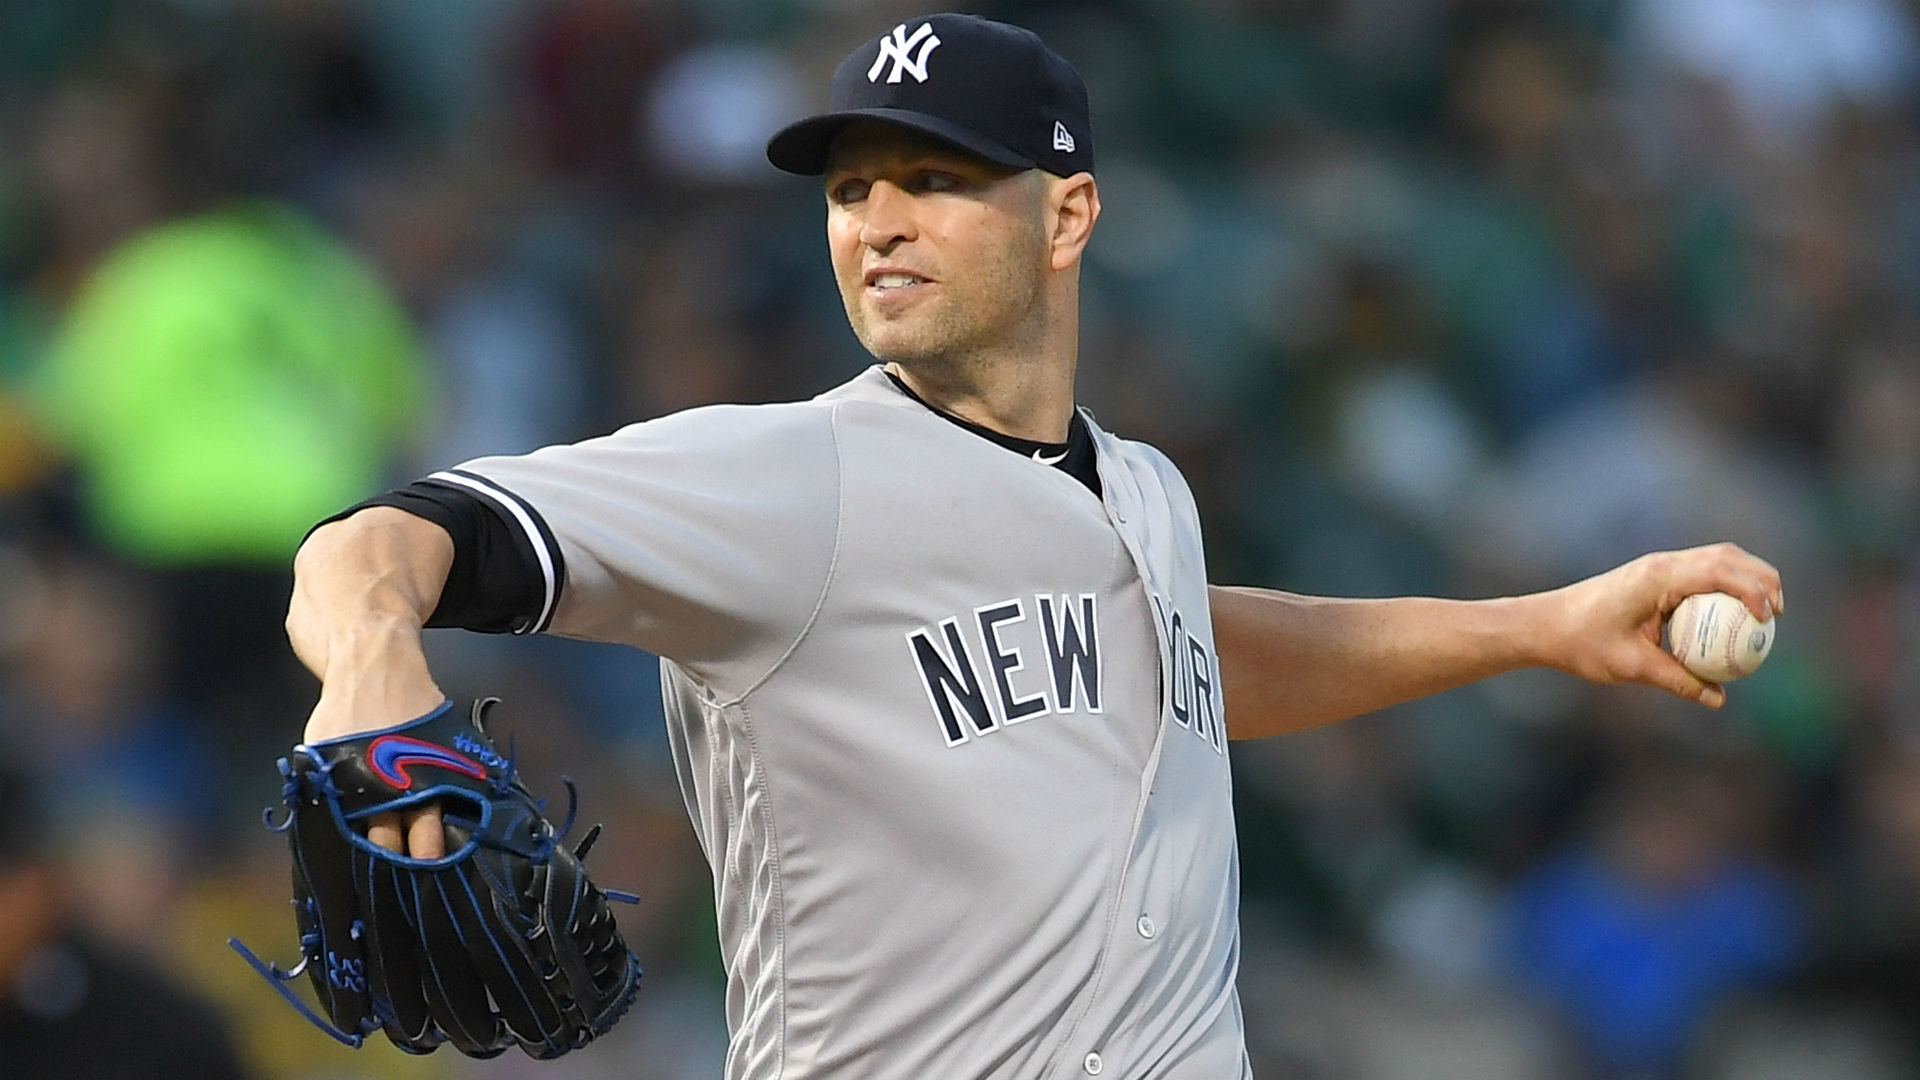 Yankees close to deal with Happ